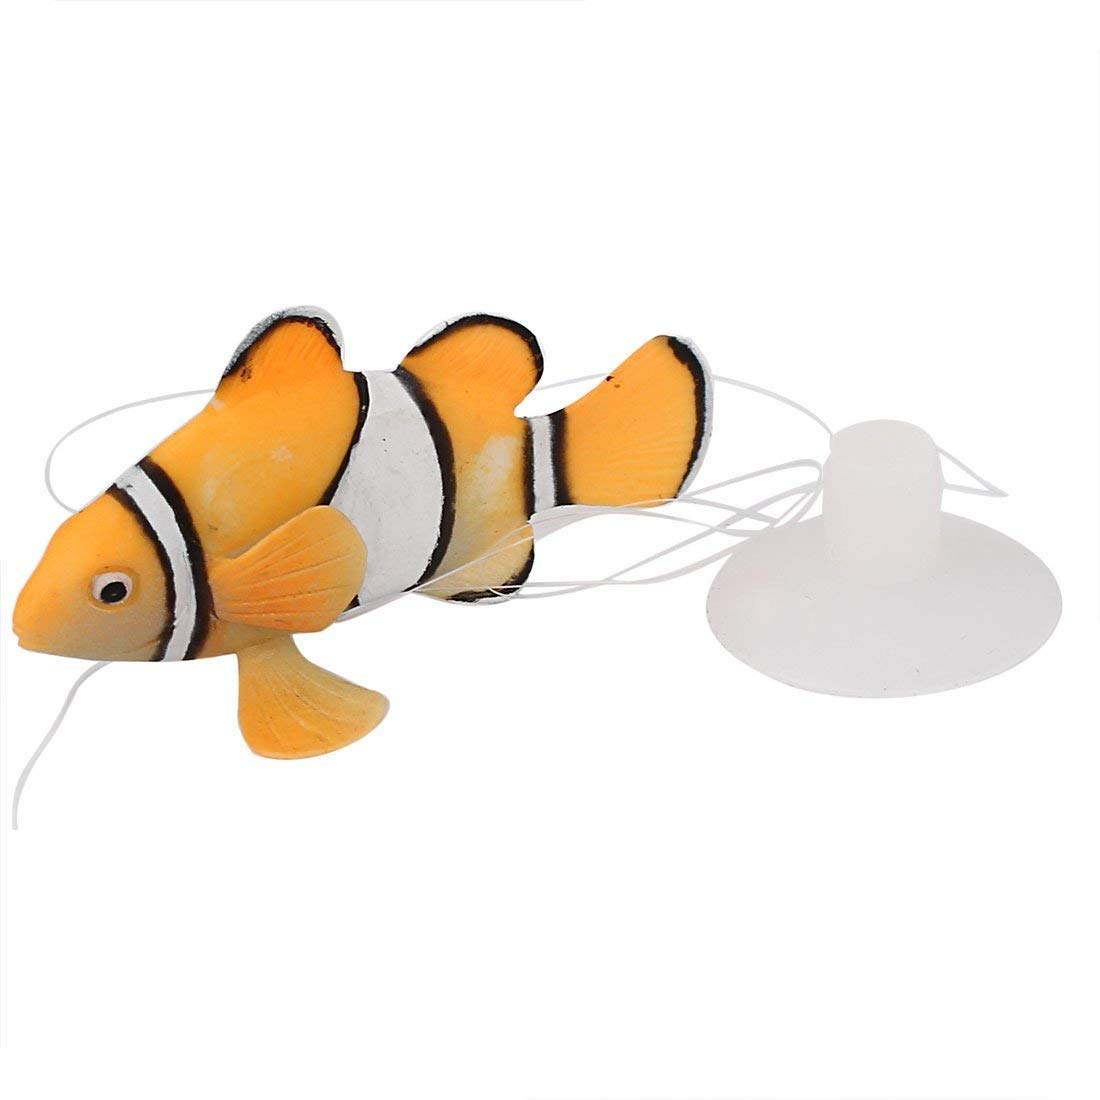 Ari_Mao Aquarium Floating Clown Fish for Fish Tank Decoration (Color : Green, Size : 6.3 * 4.1cm)